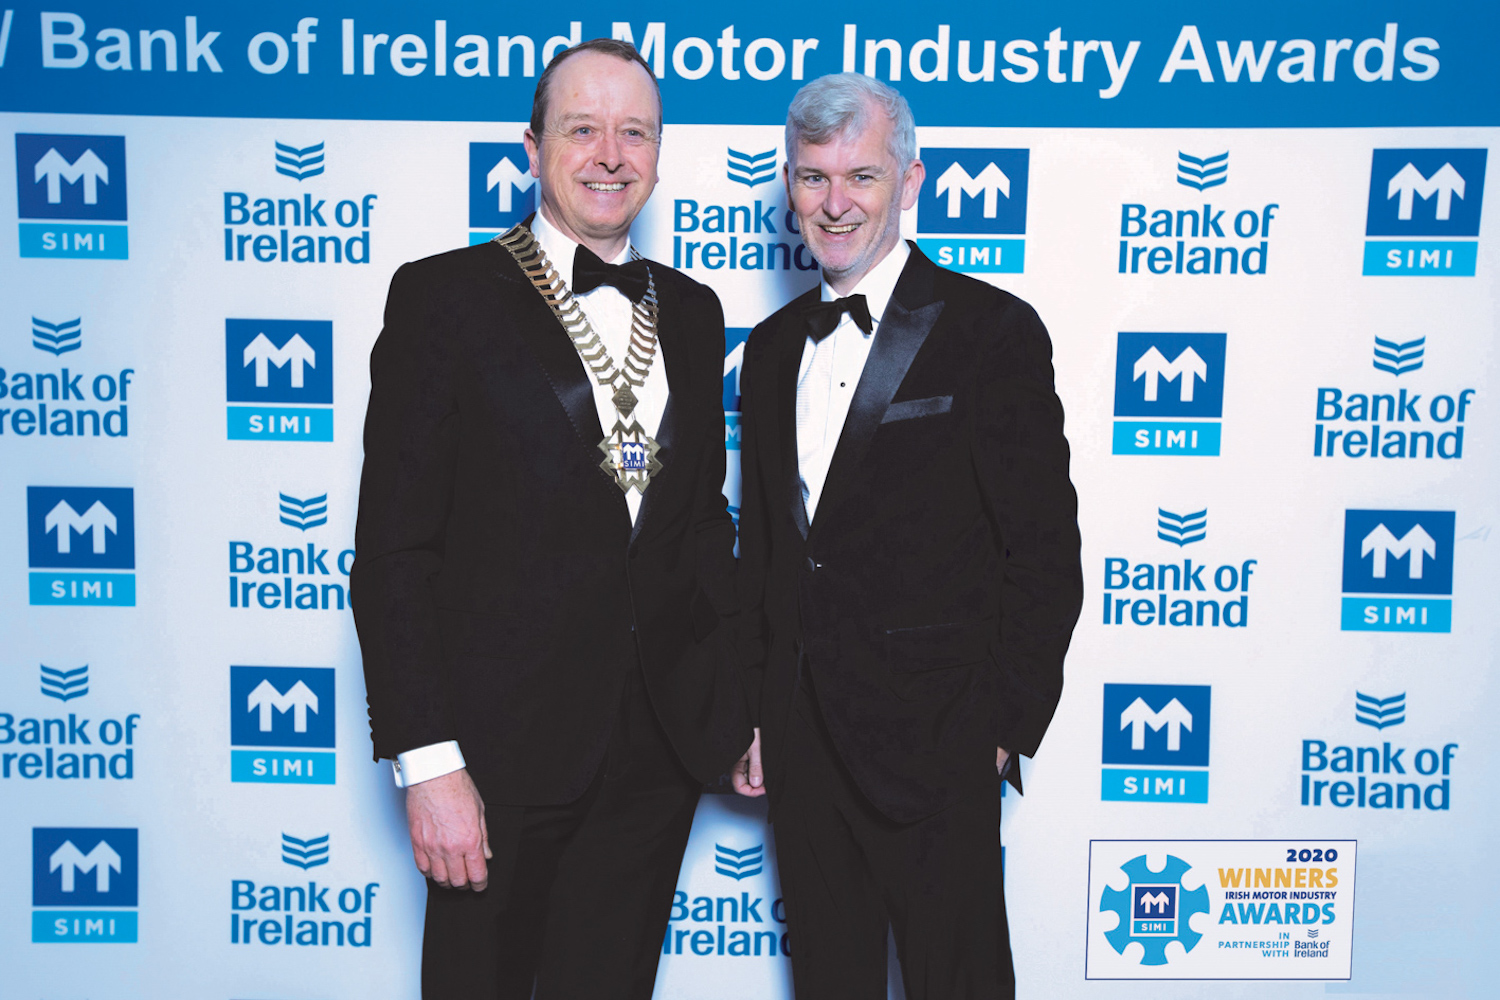 Car Industry News | Best of Irish motor industry recognised by SIMI | CompleteCar.ie